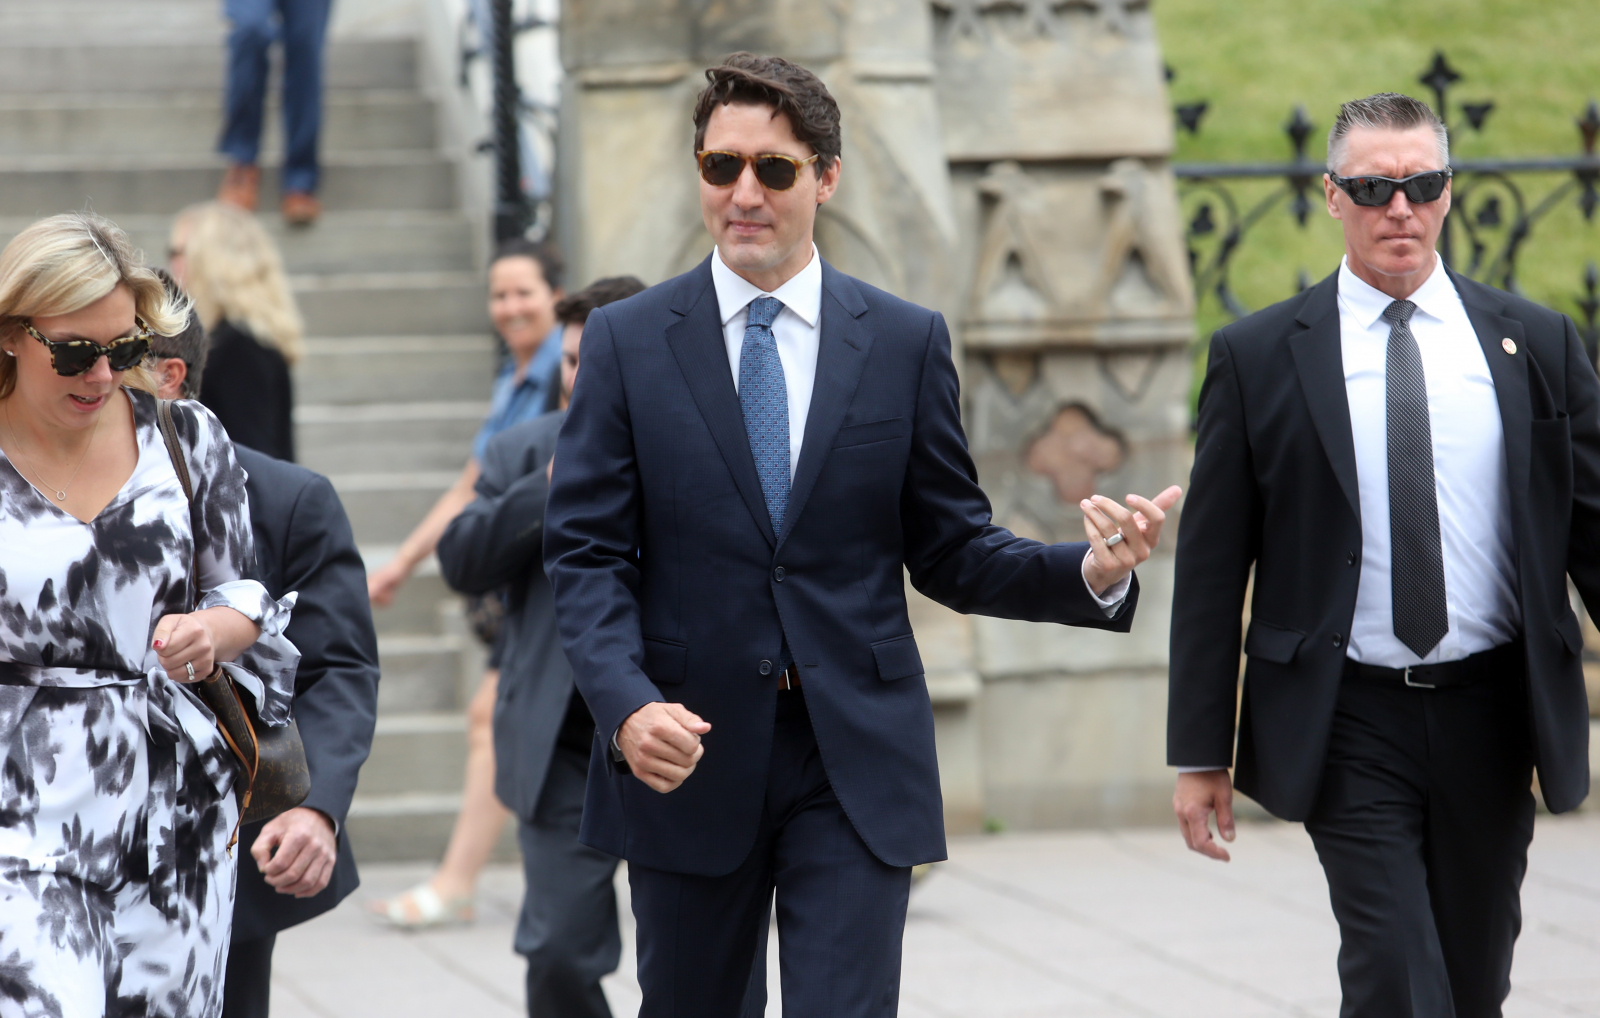 Justin Trudeau Is In Big Trouble After Violating Canada's Ethics Code